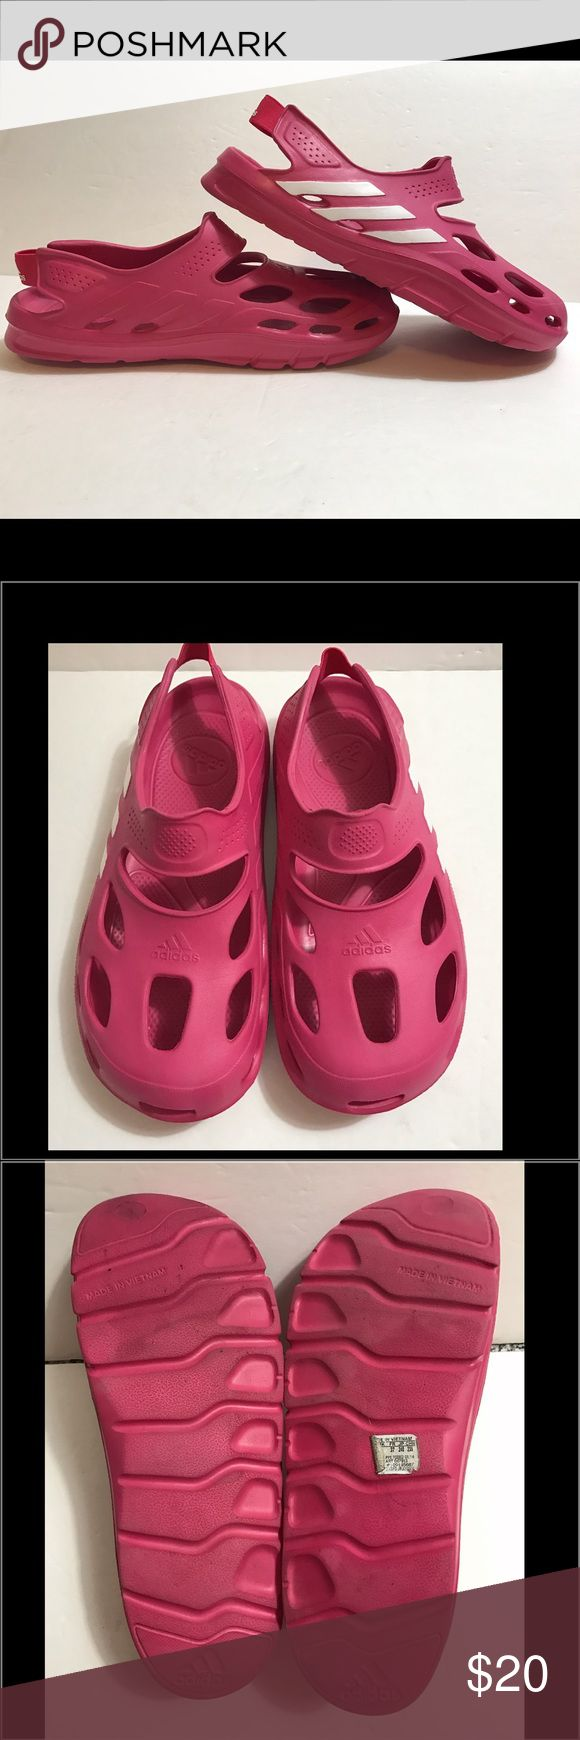 Adidas pink slide on sandals Adidas pink slide on sandals. Adorable pink adidas slide on sandals.  Closed toe, back strap.  Very lightweight and comfortable! Adidas Shoes Sandals